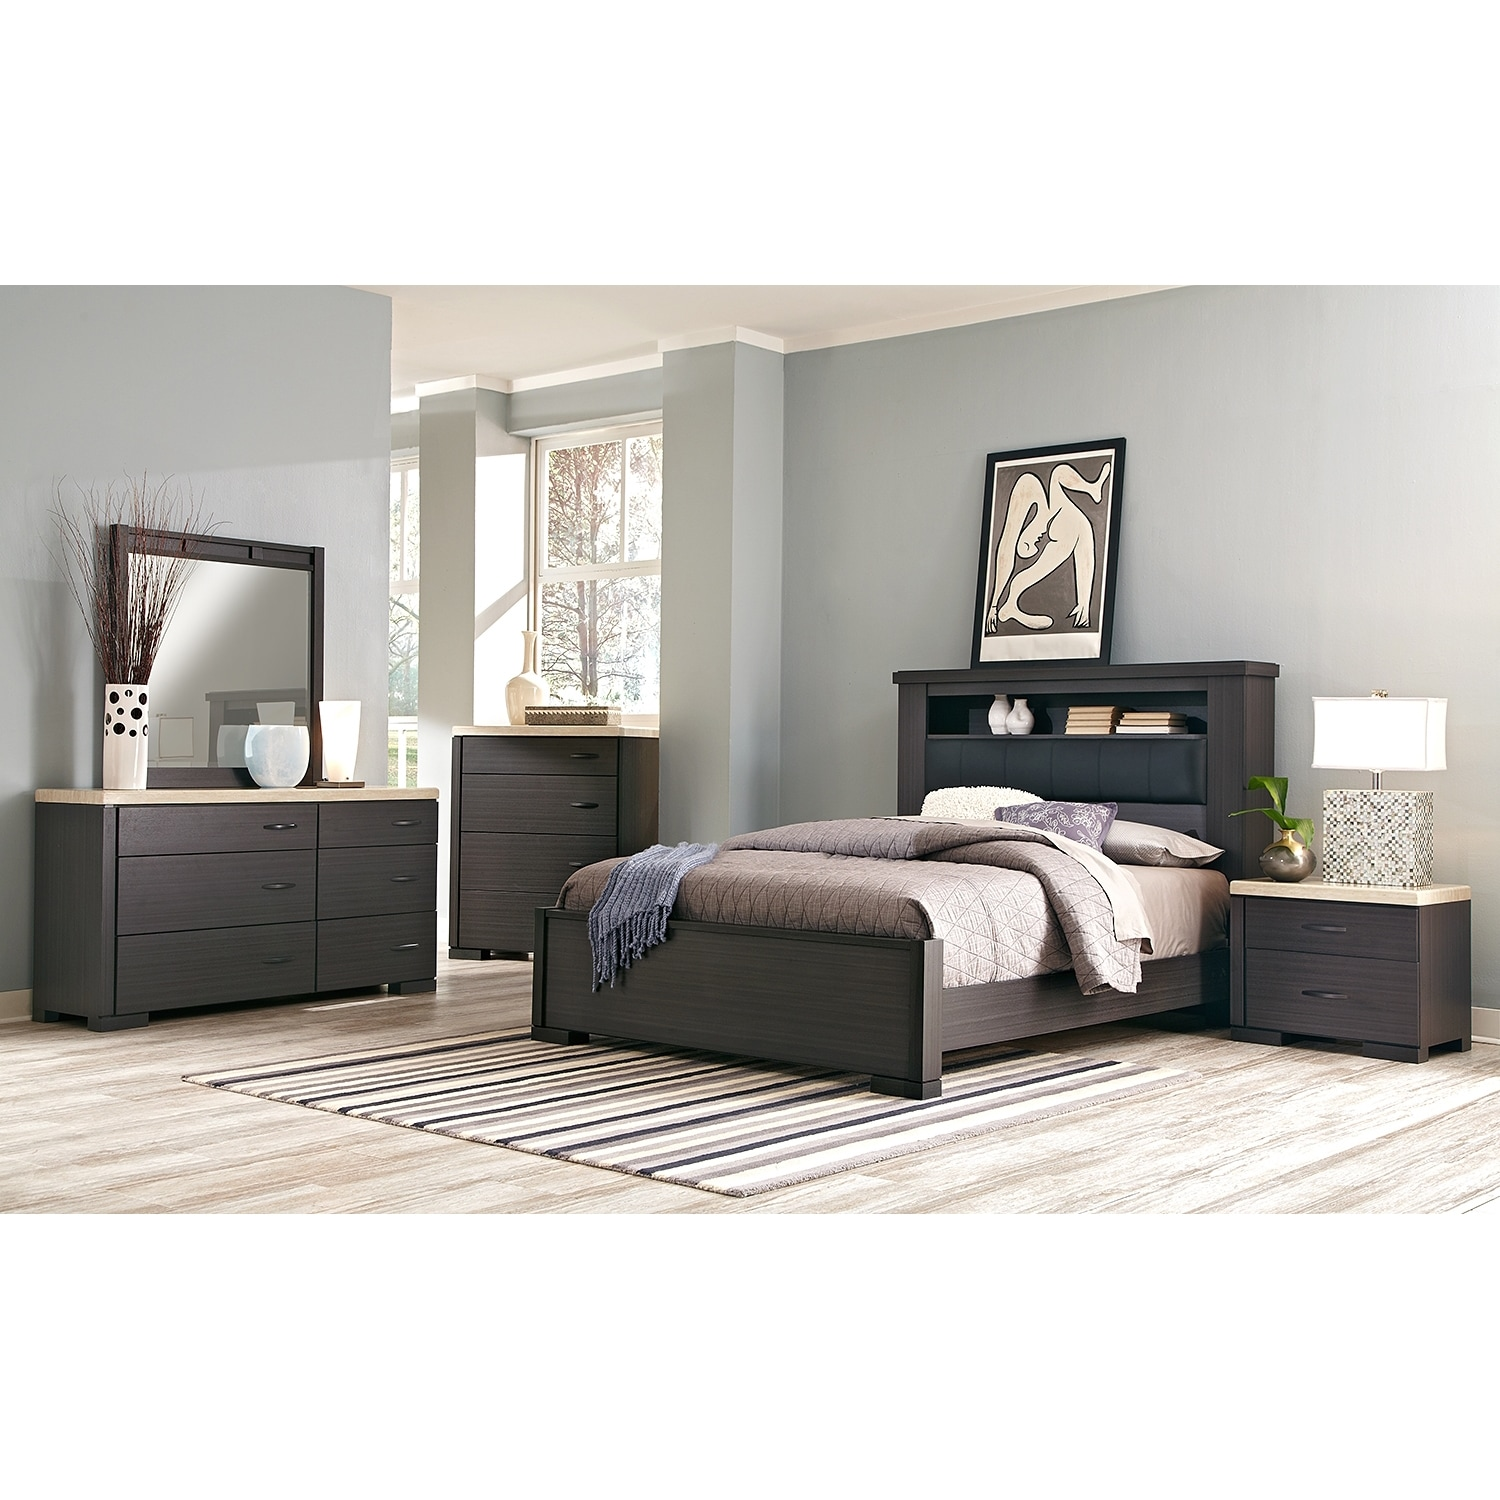 furniture value queen freight in living s vegas by sets evan designs south american ideas beds las cheap king versa oj bag best piece set city room bedroom pc comforter commerce